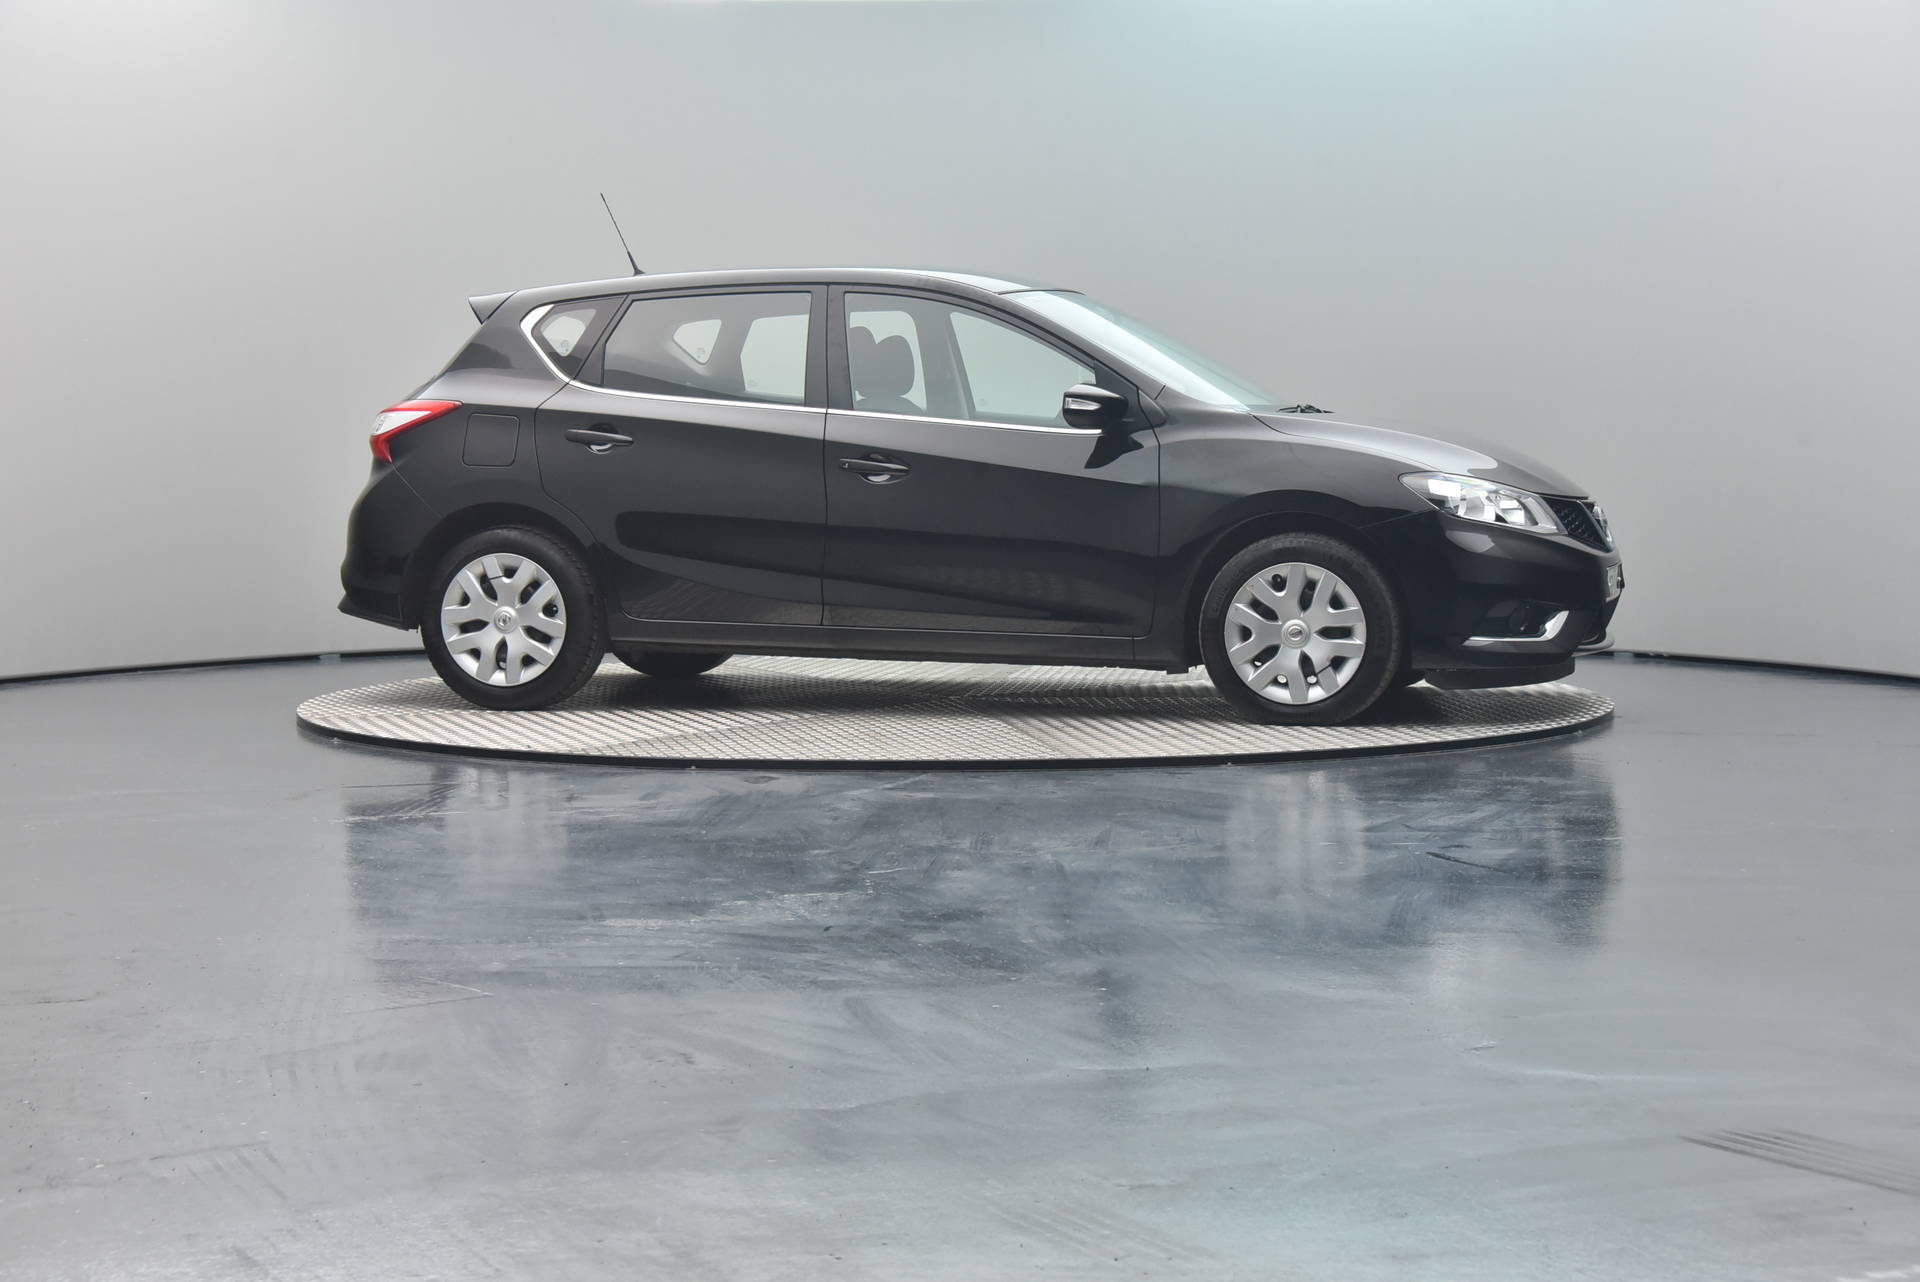 Nissan Pulsar 1.5 Dci Xe, 360-image33